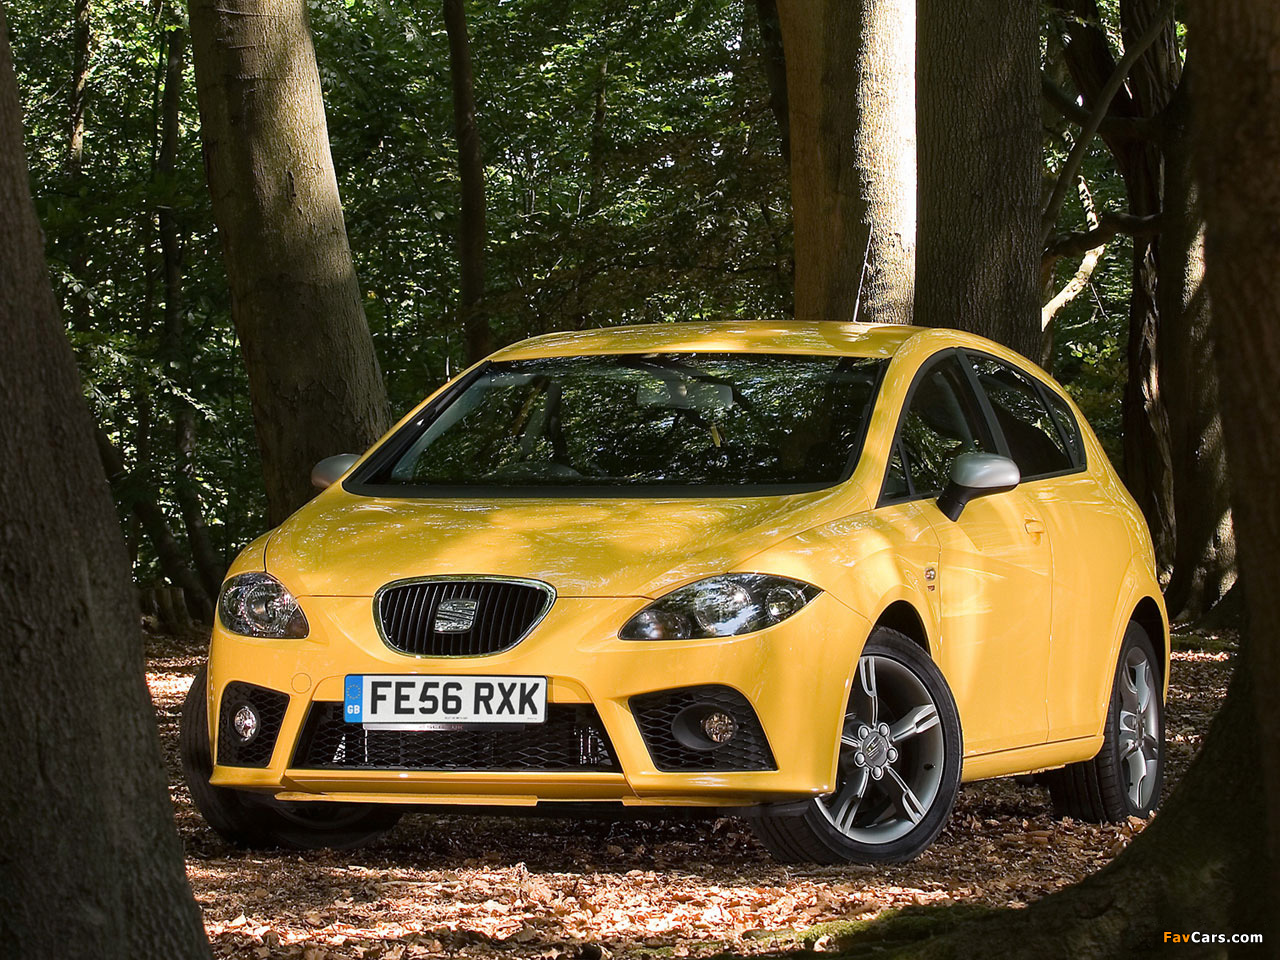 wallpapers of seat leon fr 2006 09 1280x960. Black Bedroom Furniture Sets. Home Design Ideas